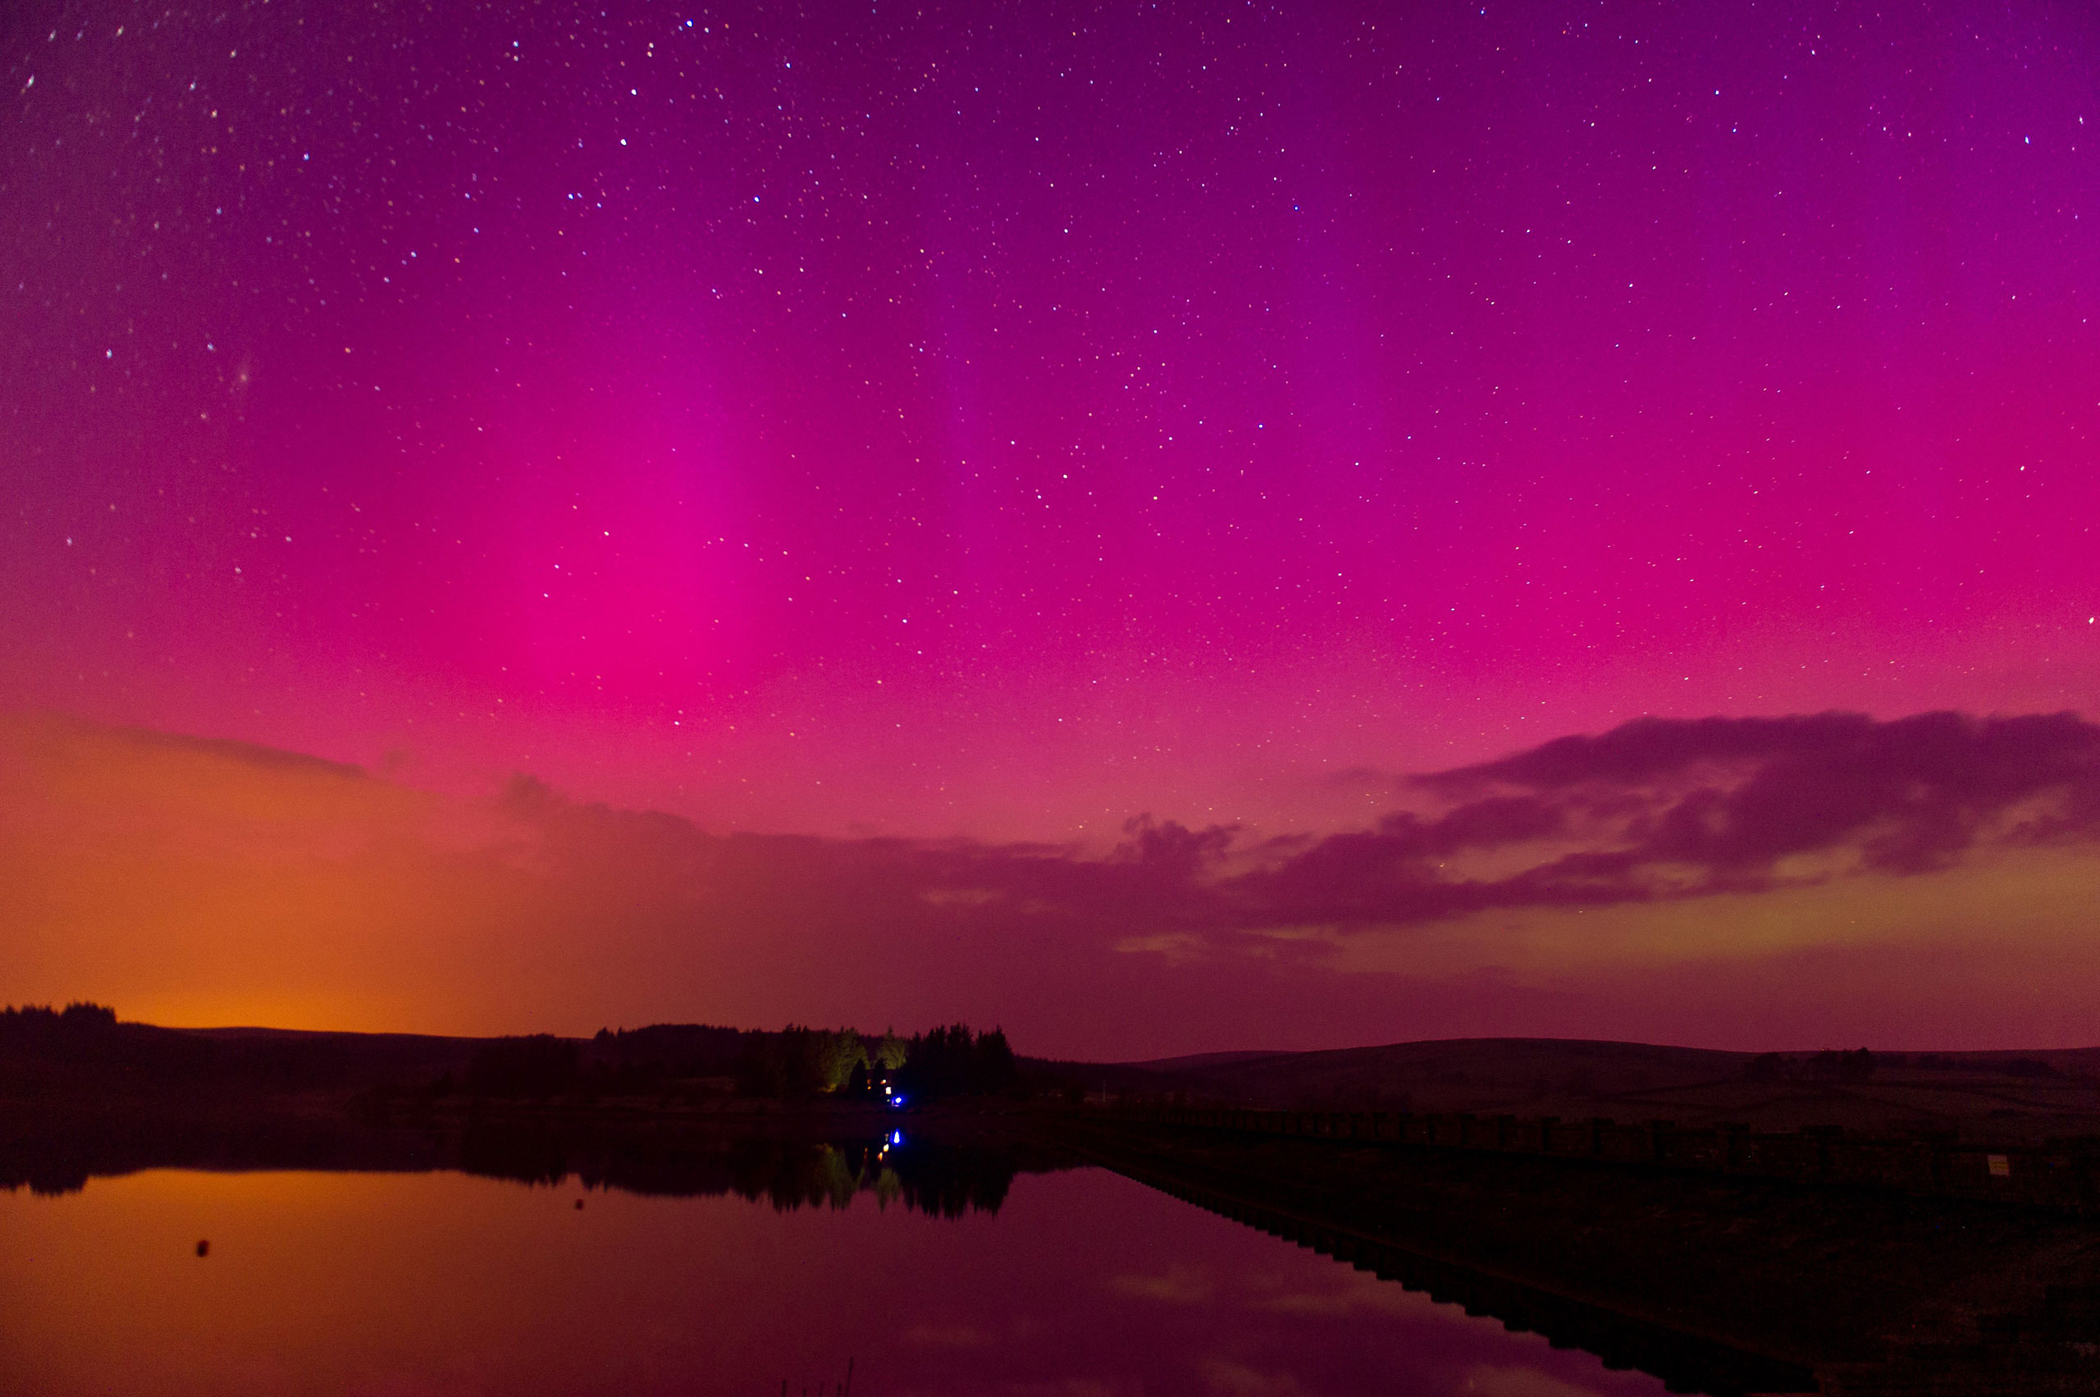 Aurora Borealis seen over the Brecon Beacons, Wales, England on Mar. 17, 2015. Increased solar activity has meant that the northern lights were viewable over many areas of the UK, reaching as far south as South Wales.